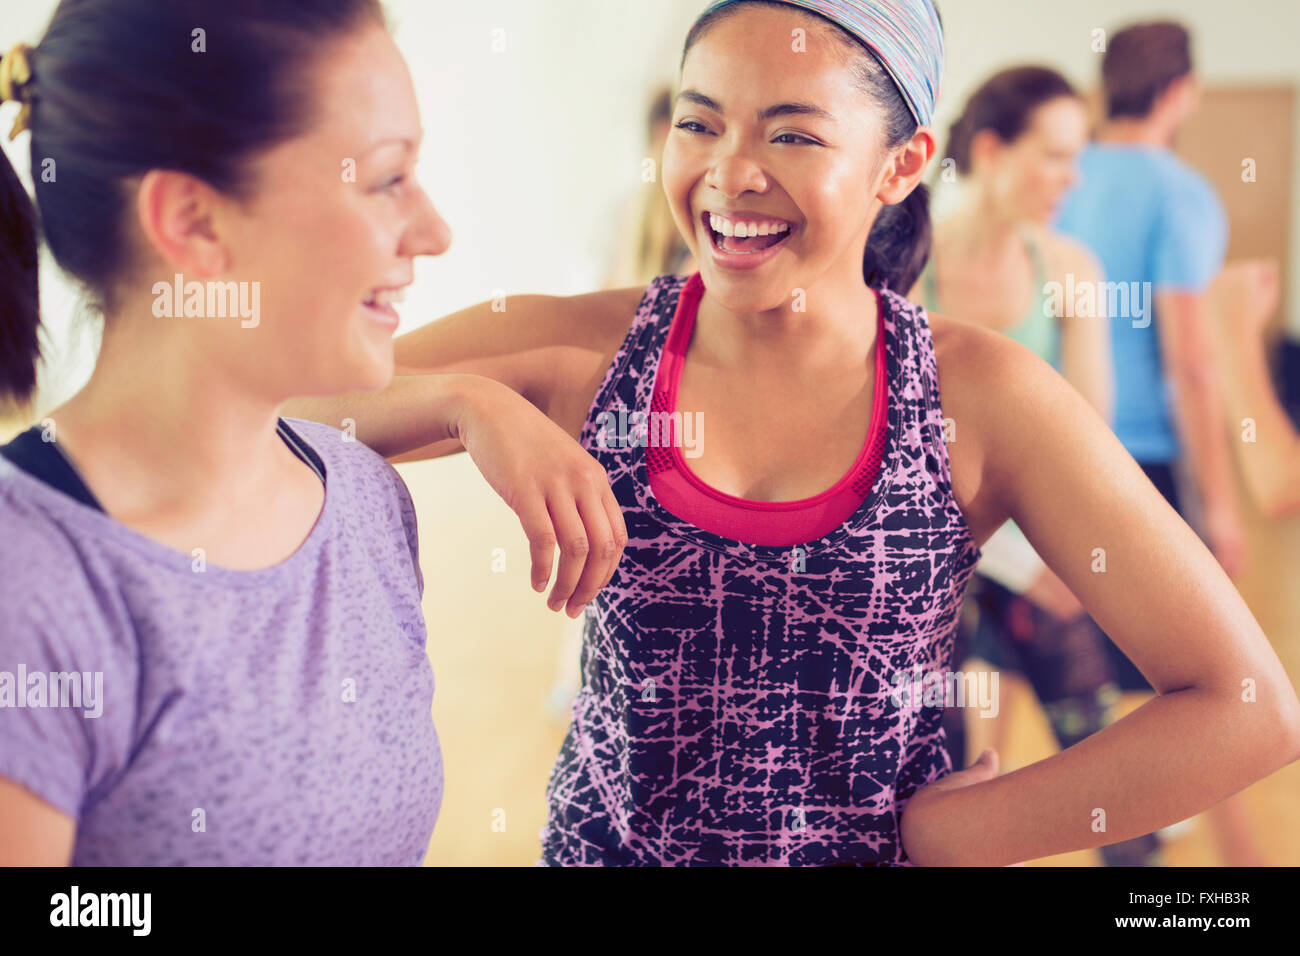 Laughing women in exercise class Photo Stock